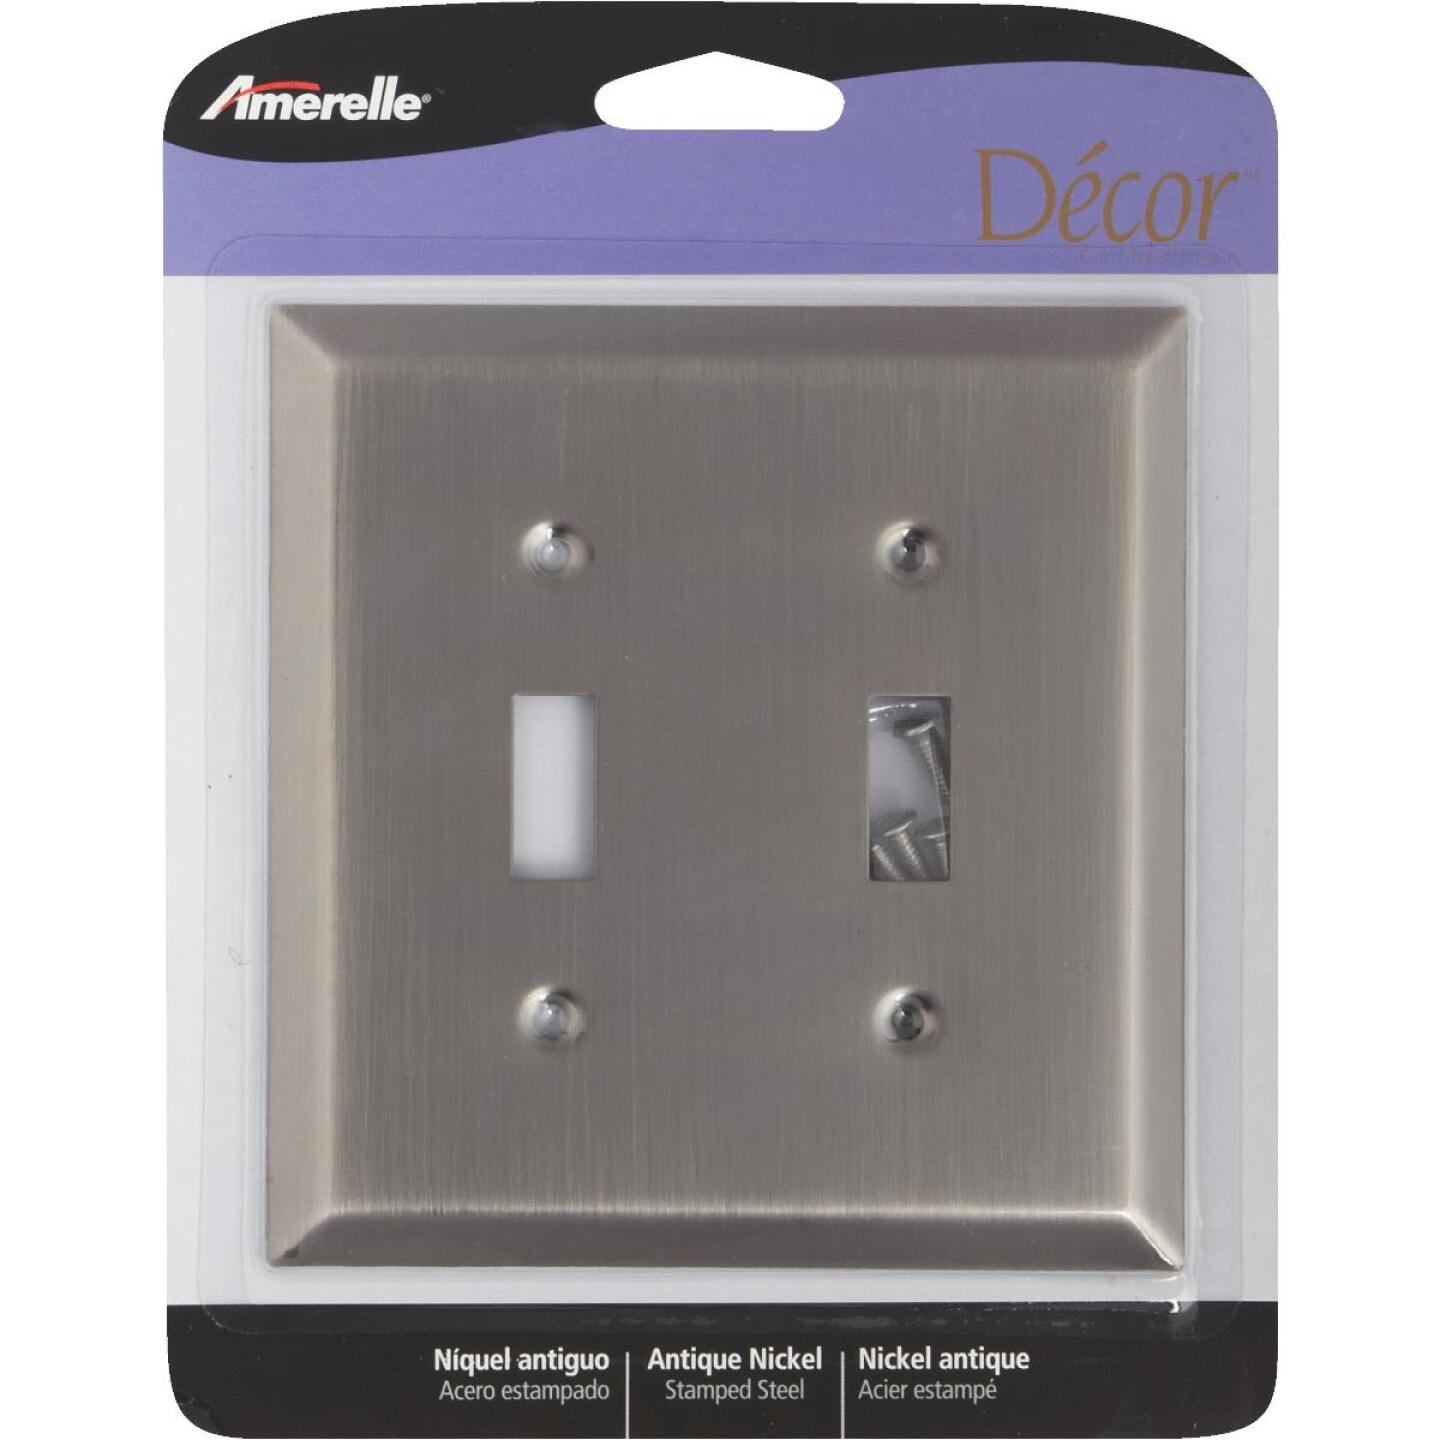 Amerelle 2-Gang Stamped Steel Toggle Switch Wall Plate, Antique Nickel Image 1